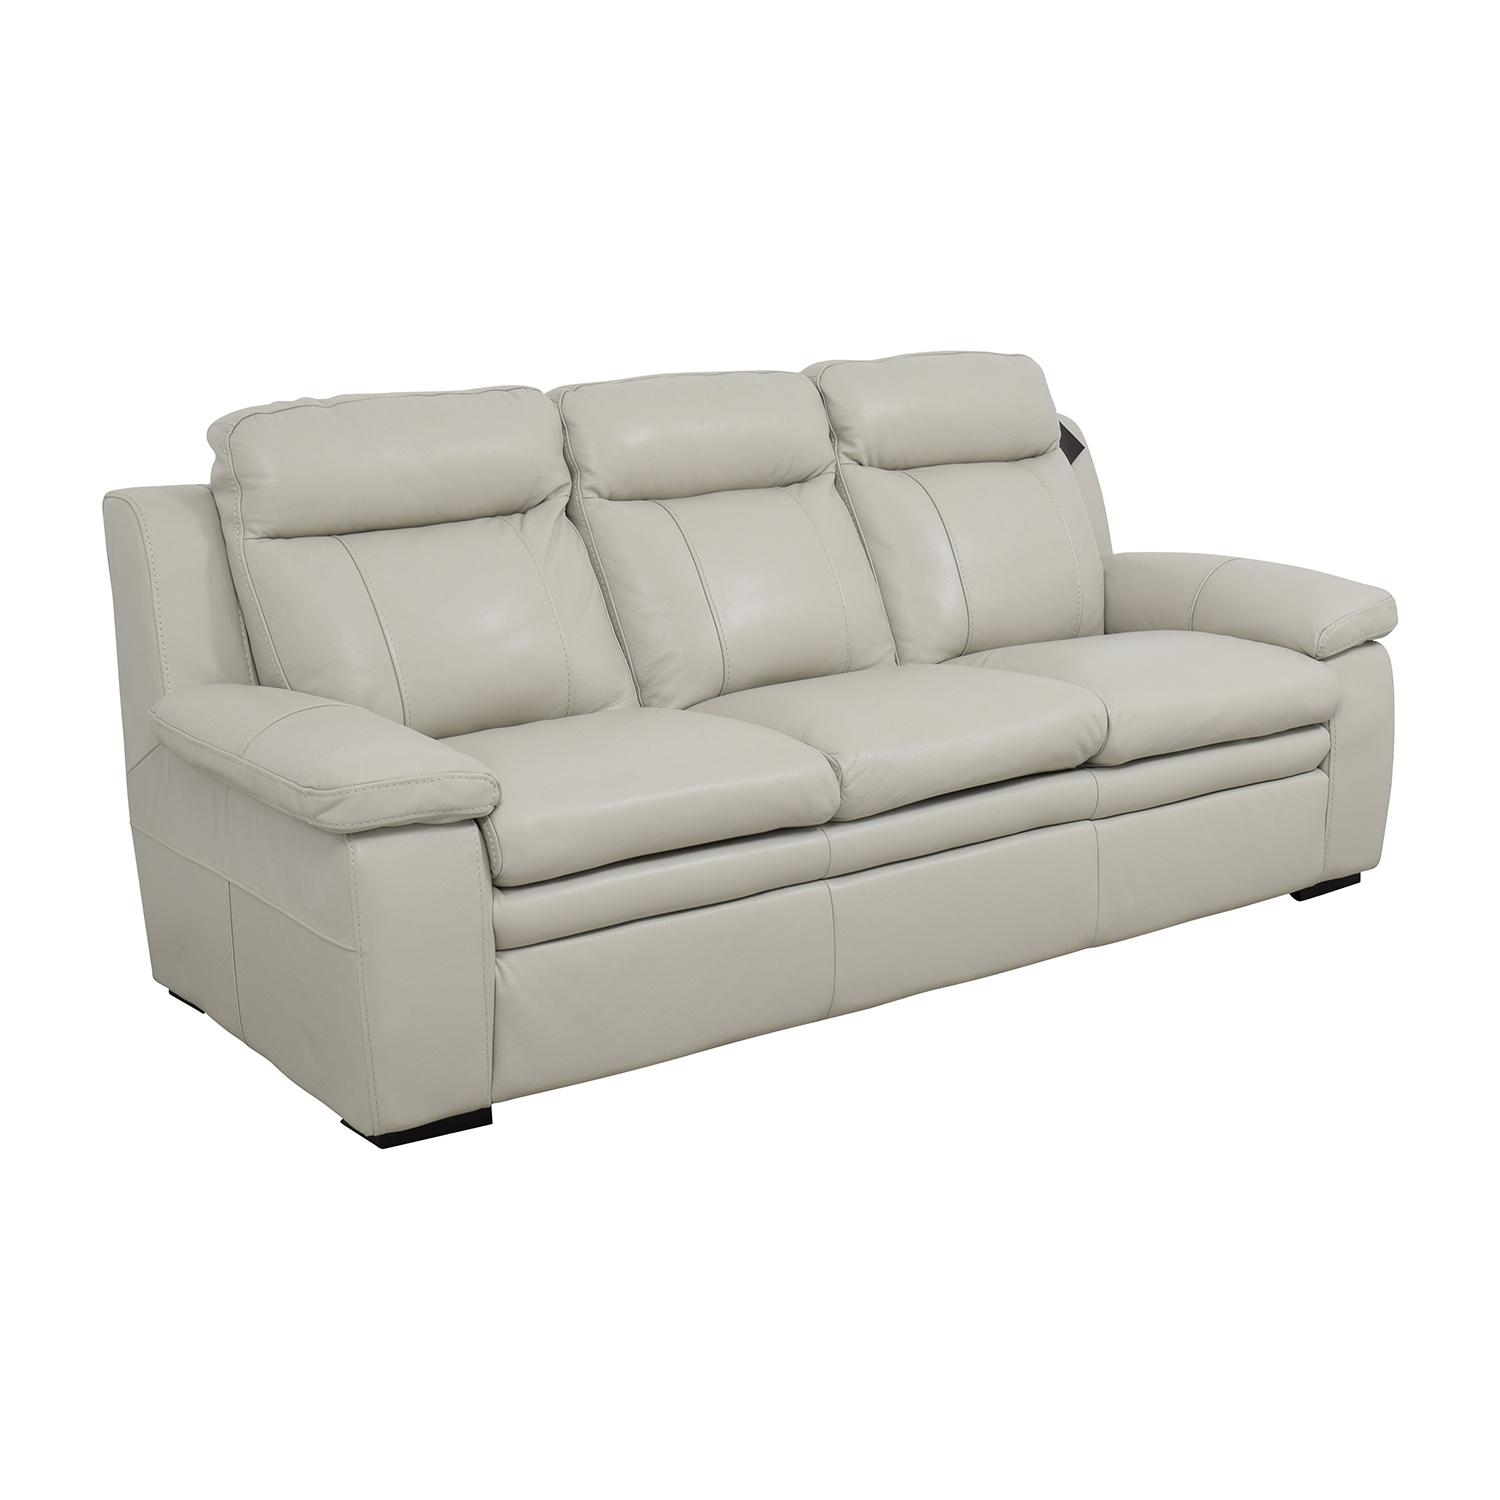 67% Off - Macy's Macy's Zane White Leather Sofa / Sofas throughout Macys Sofas